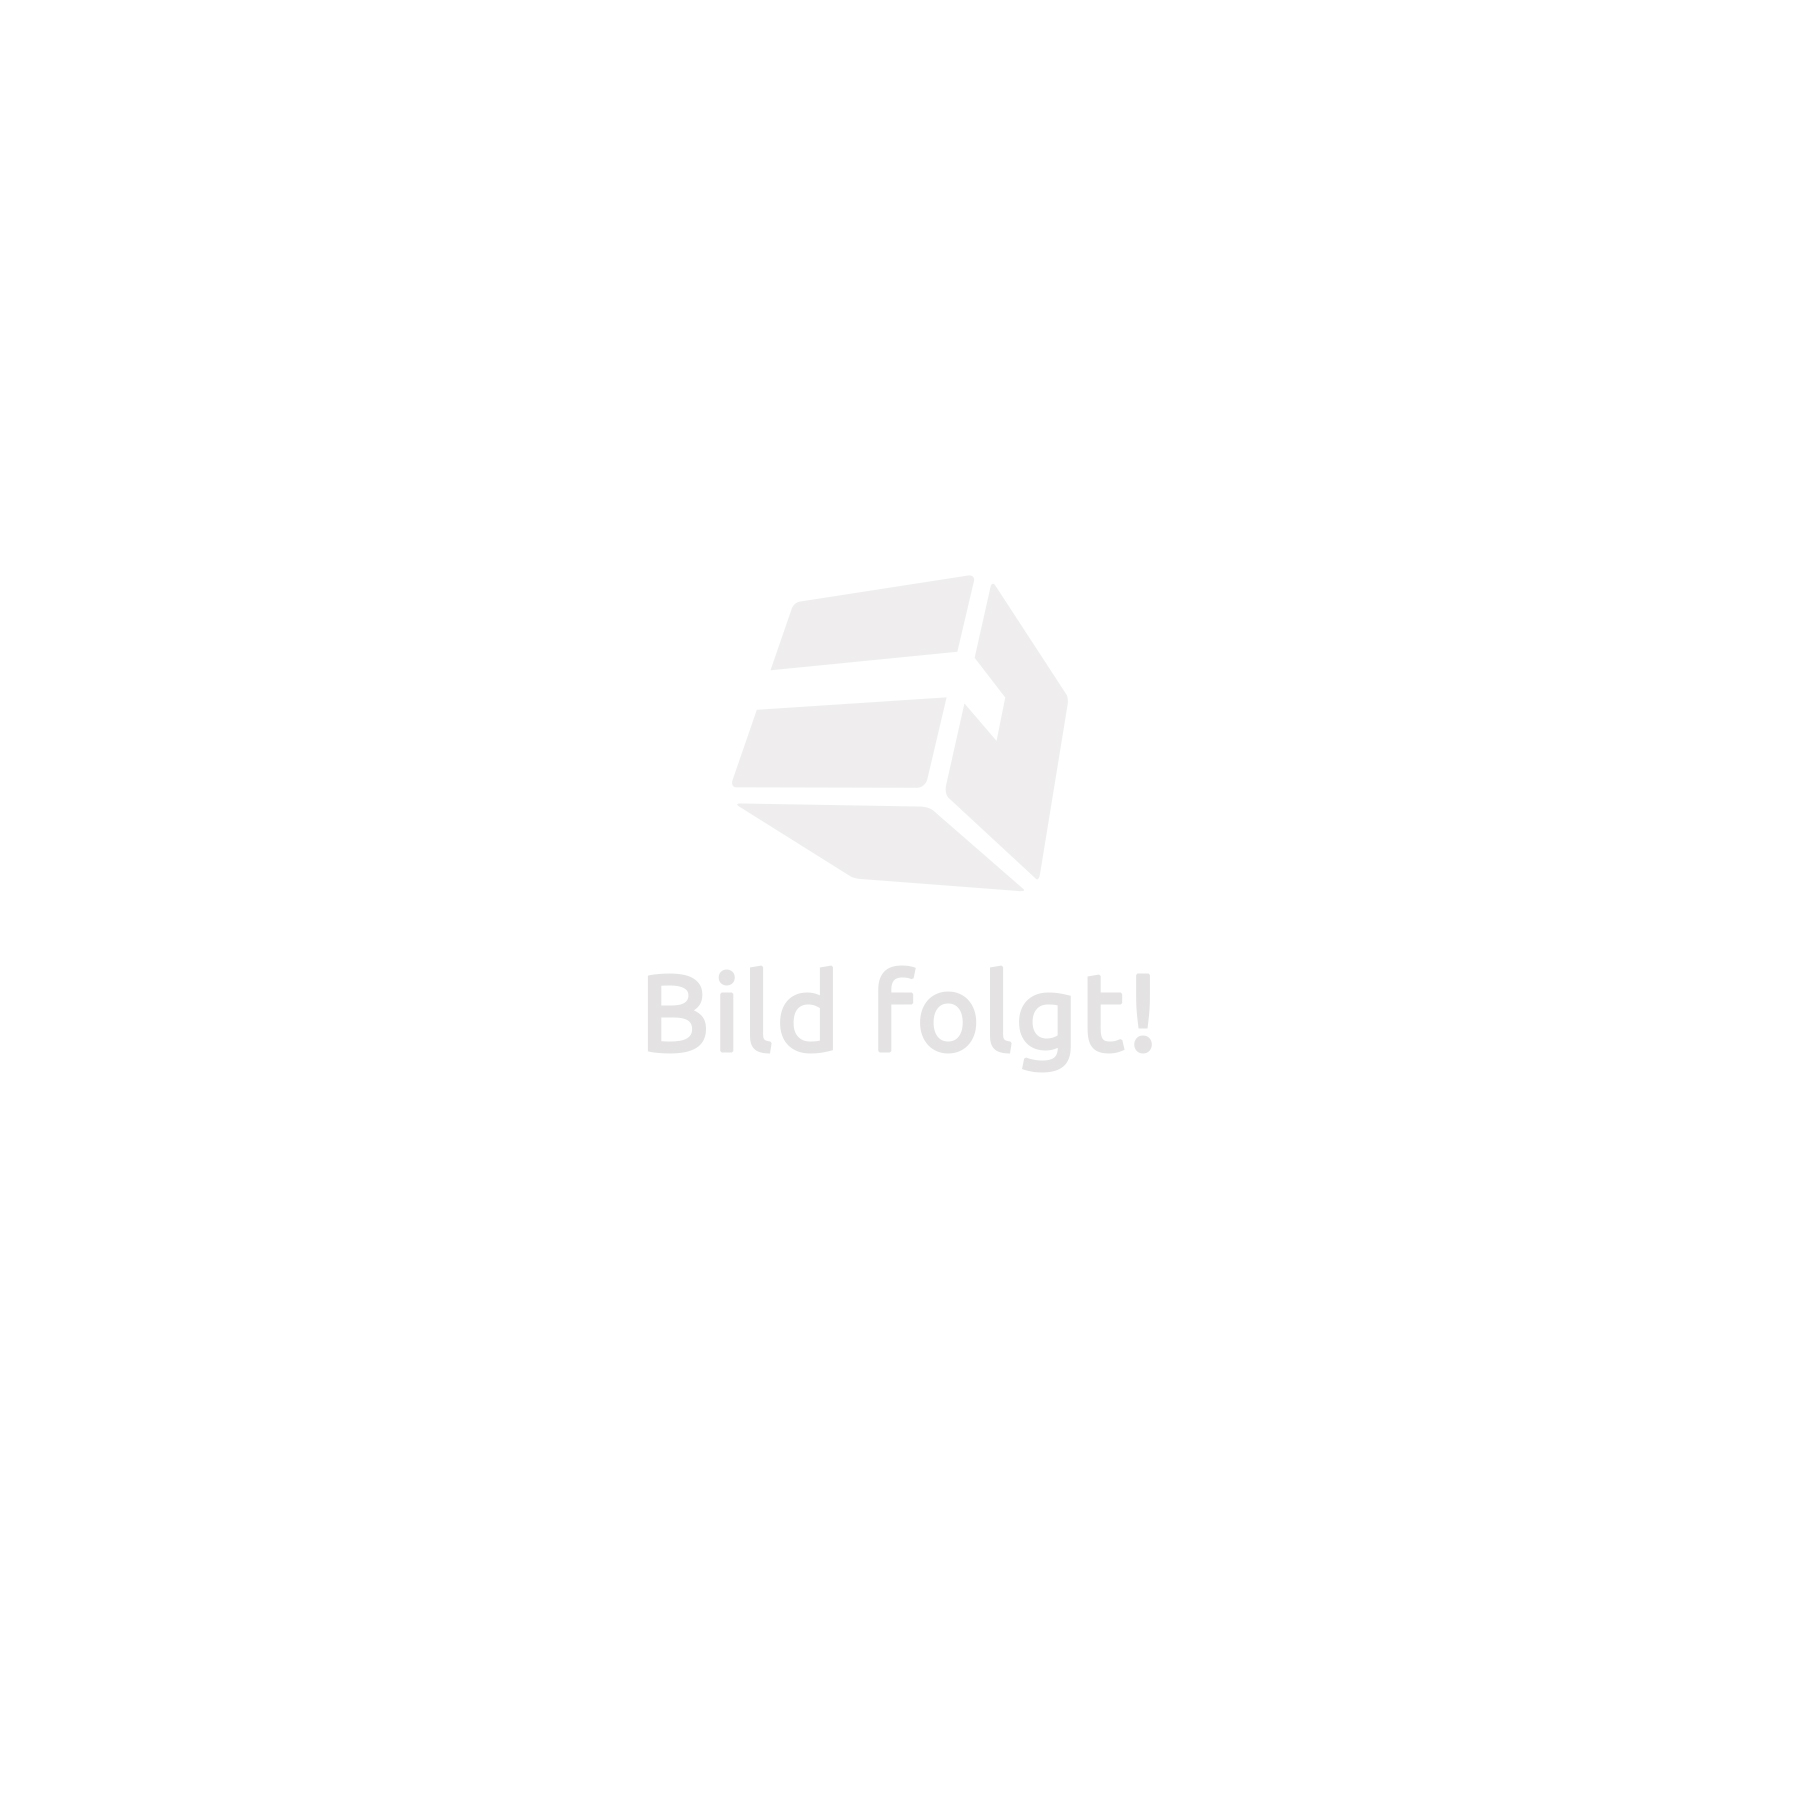 Hundetransportbox single mit gerader Rückwand 65 x 90 x 69,5cm